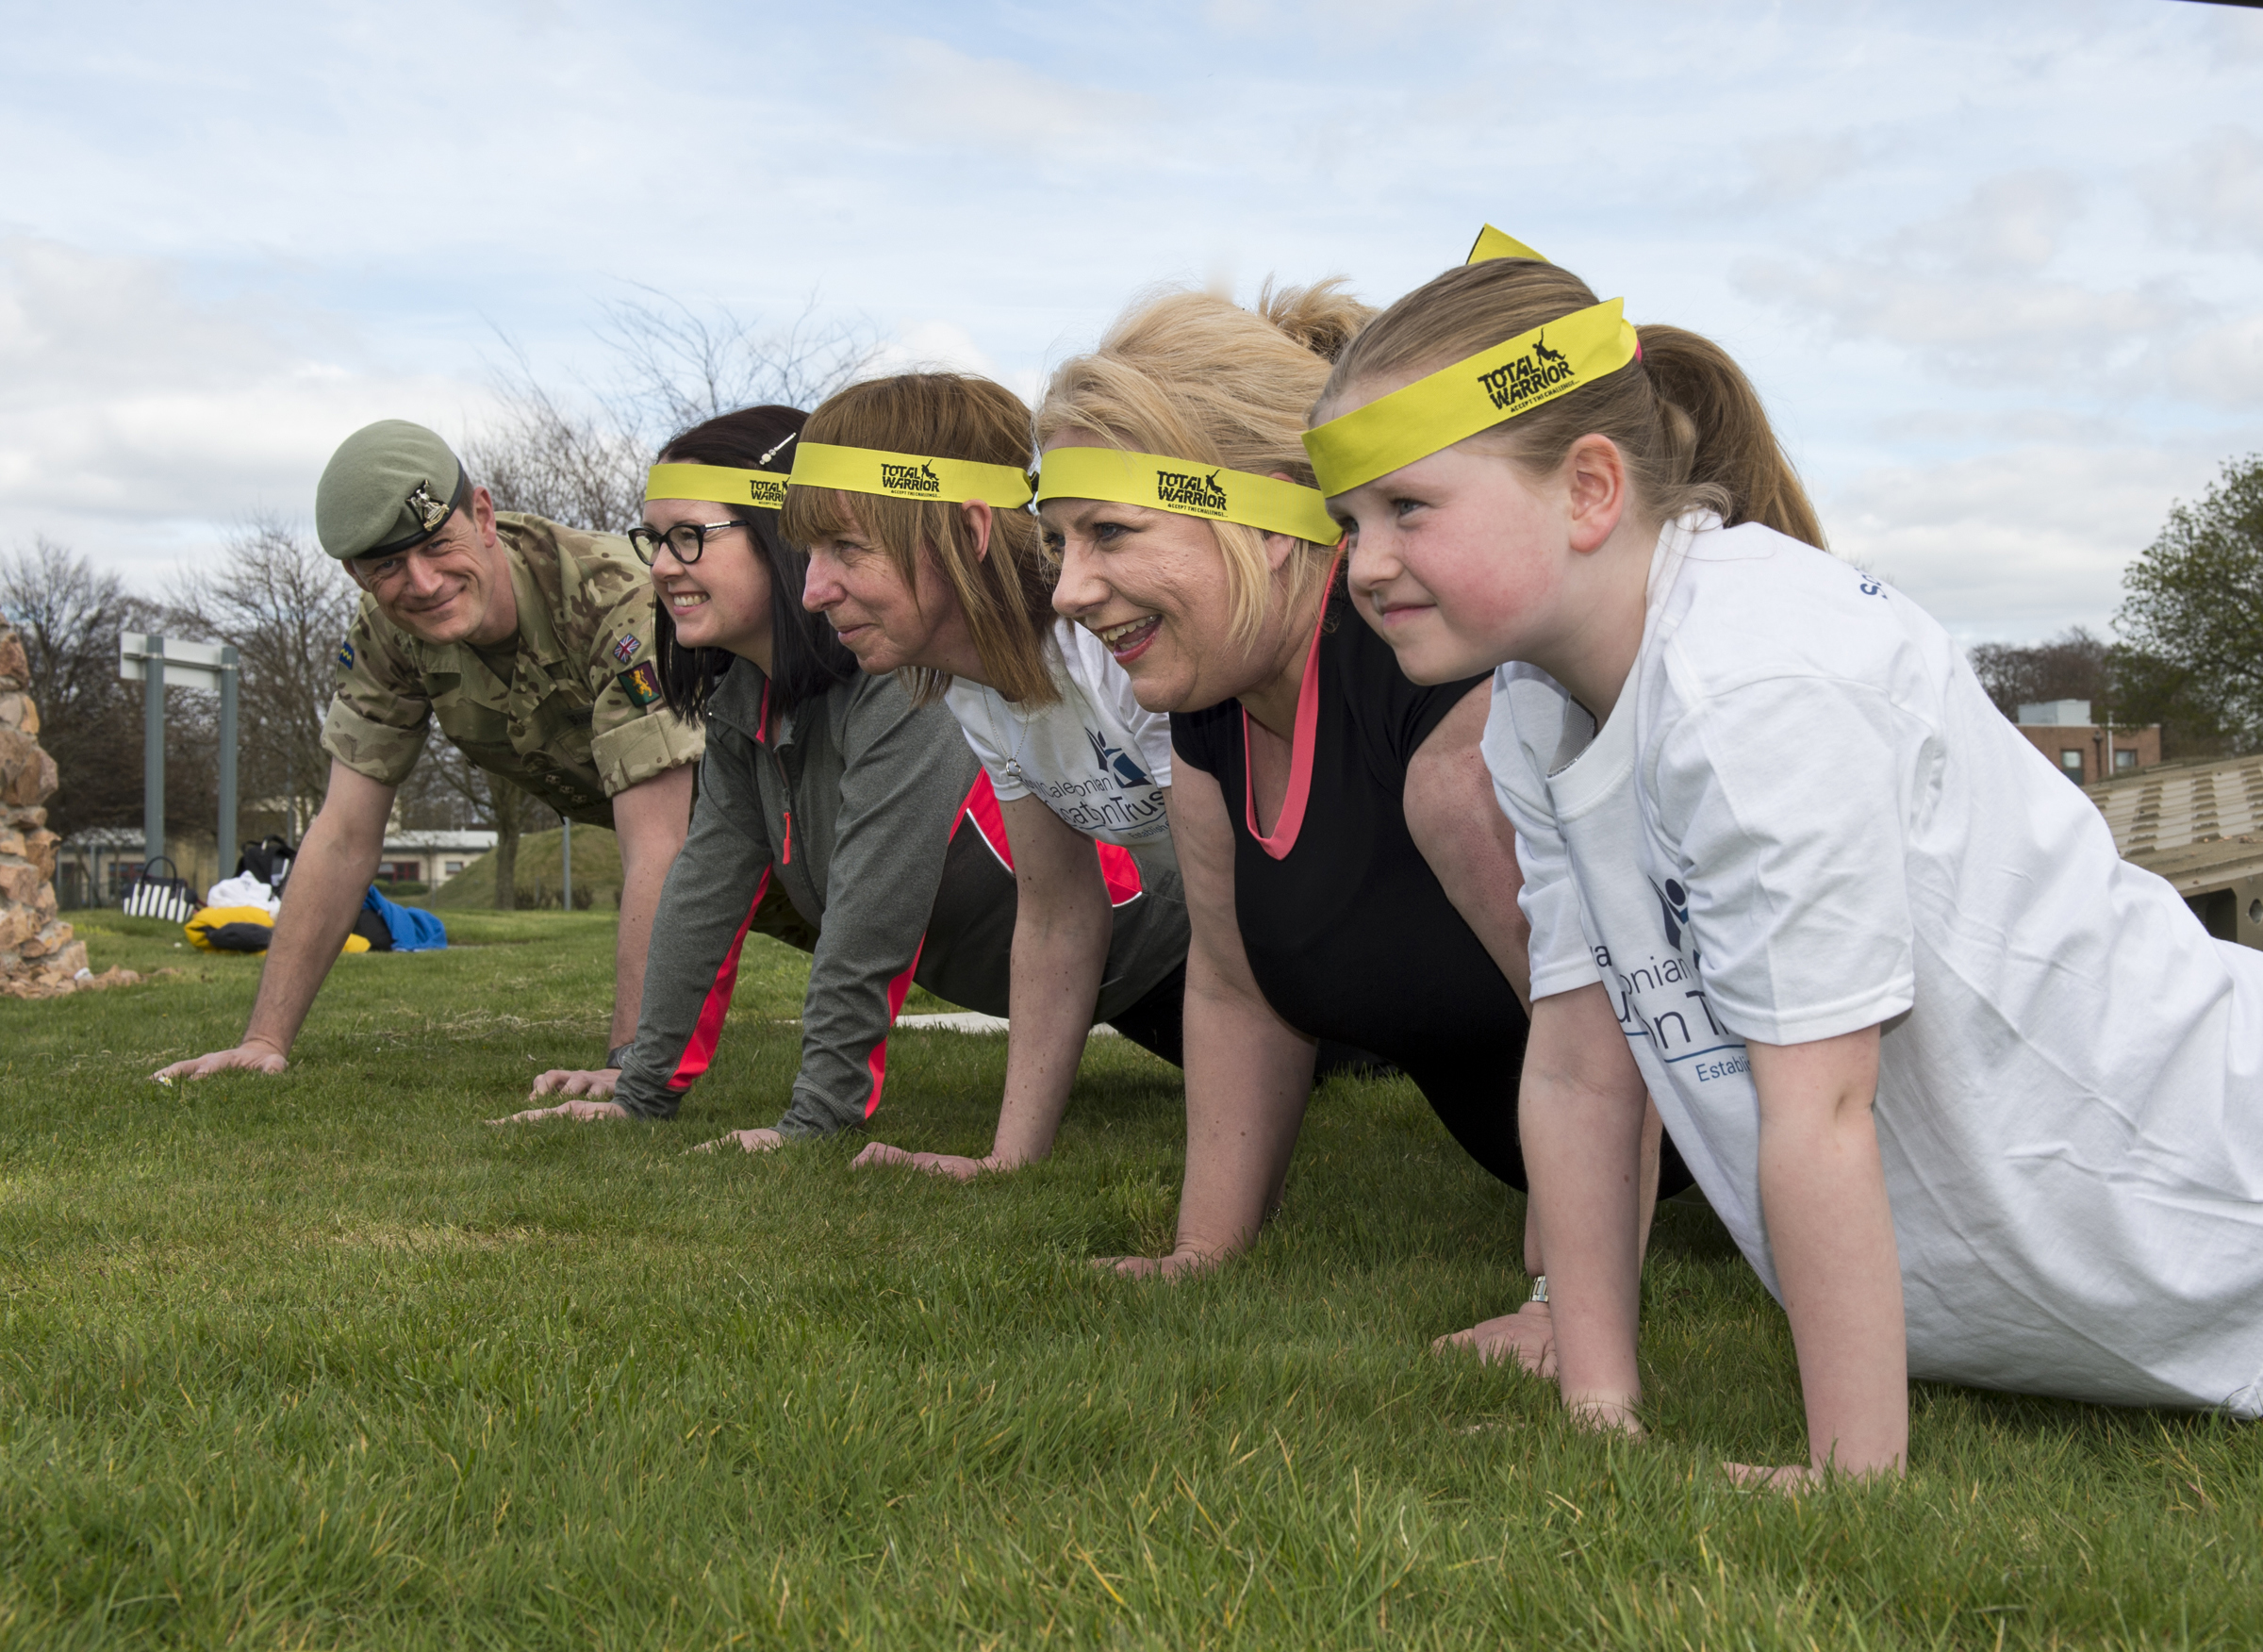 Image for Soldiers Sign Up For Total Warrior To Raise Money For Scottish Children's Charity